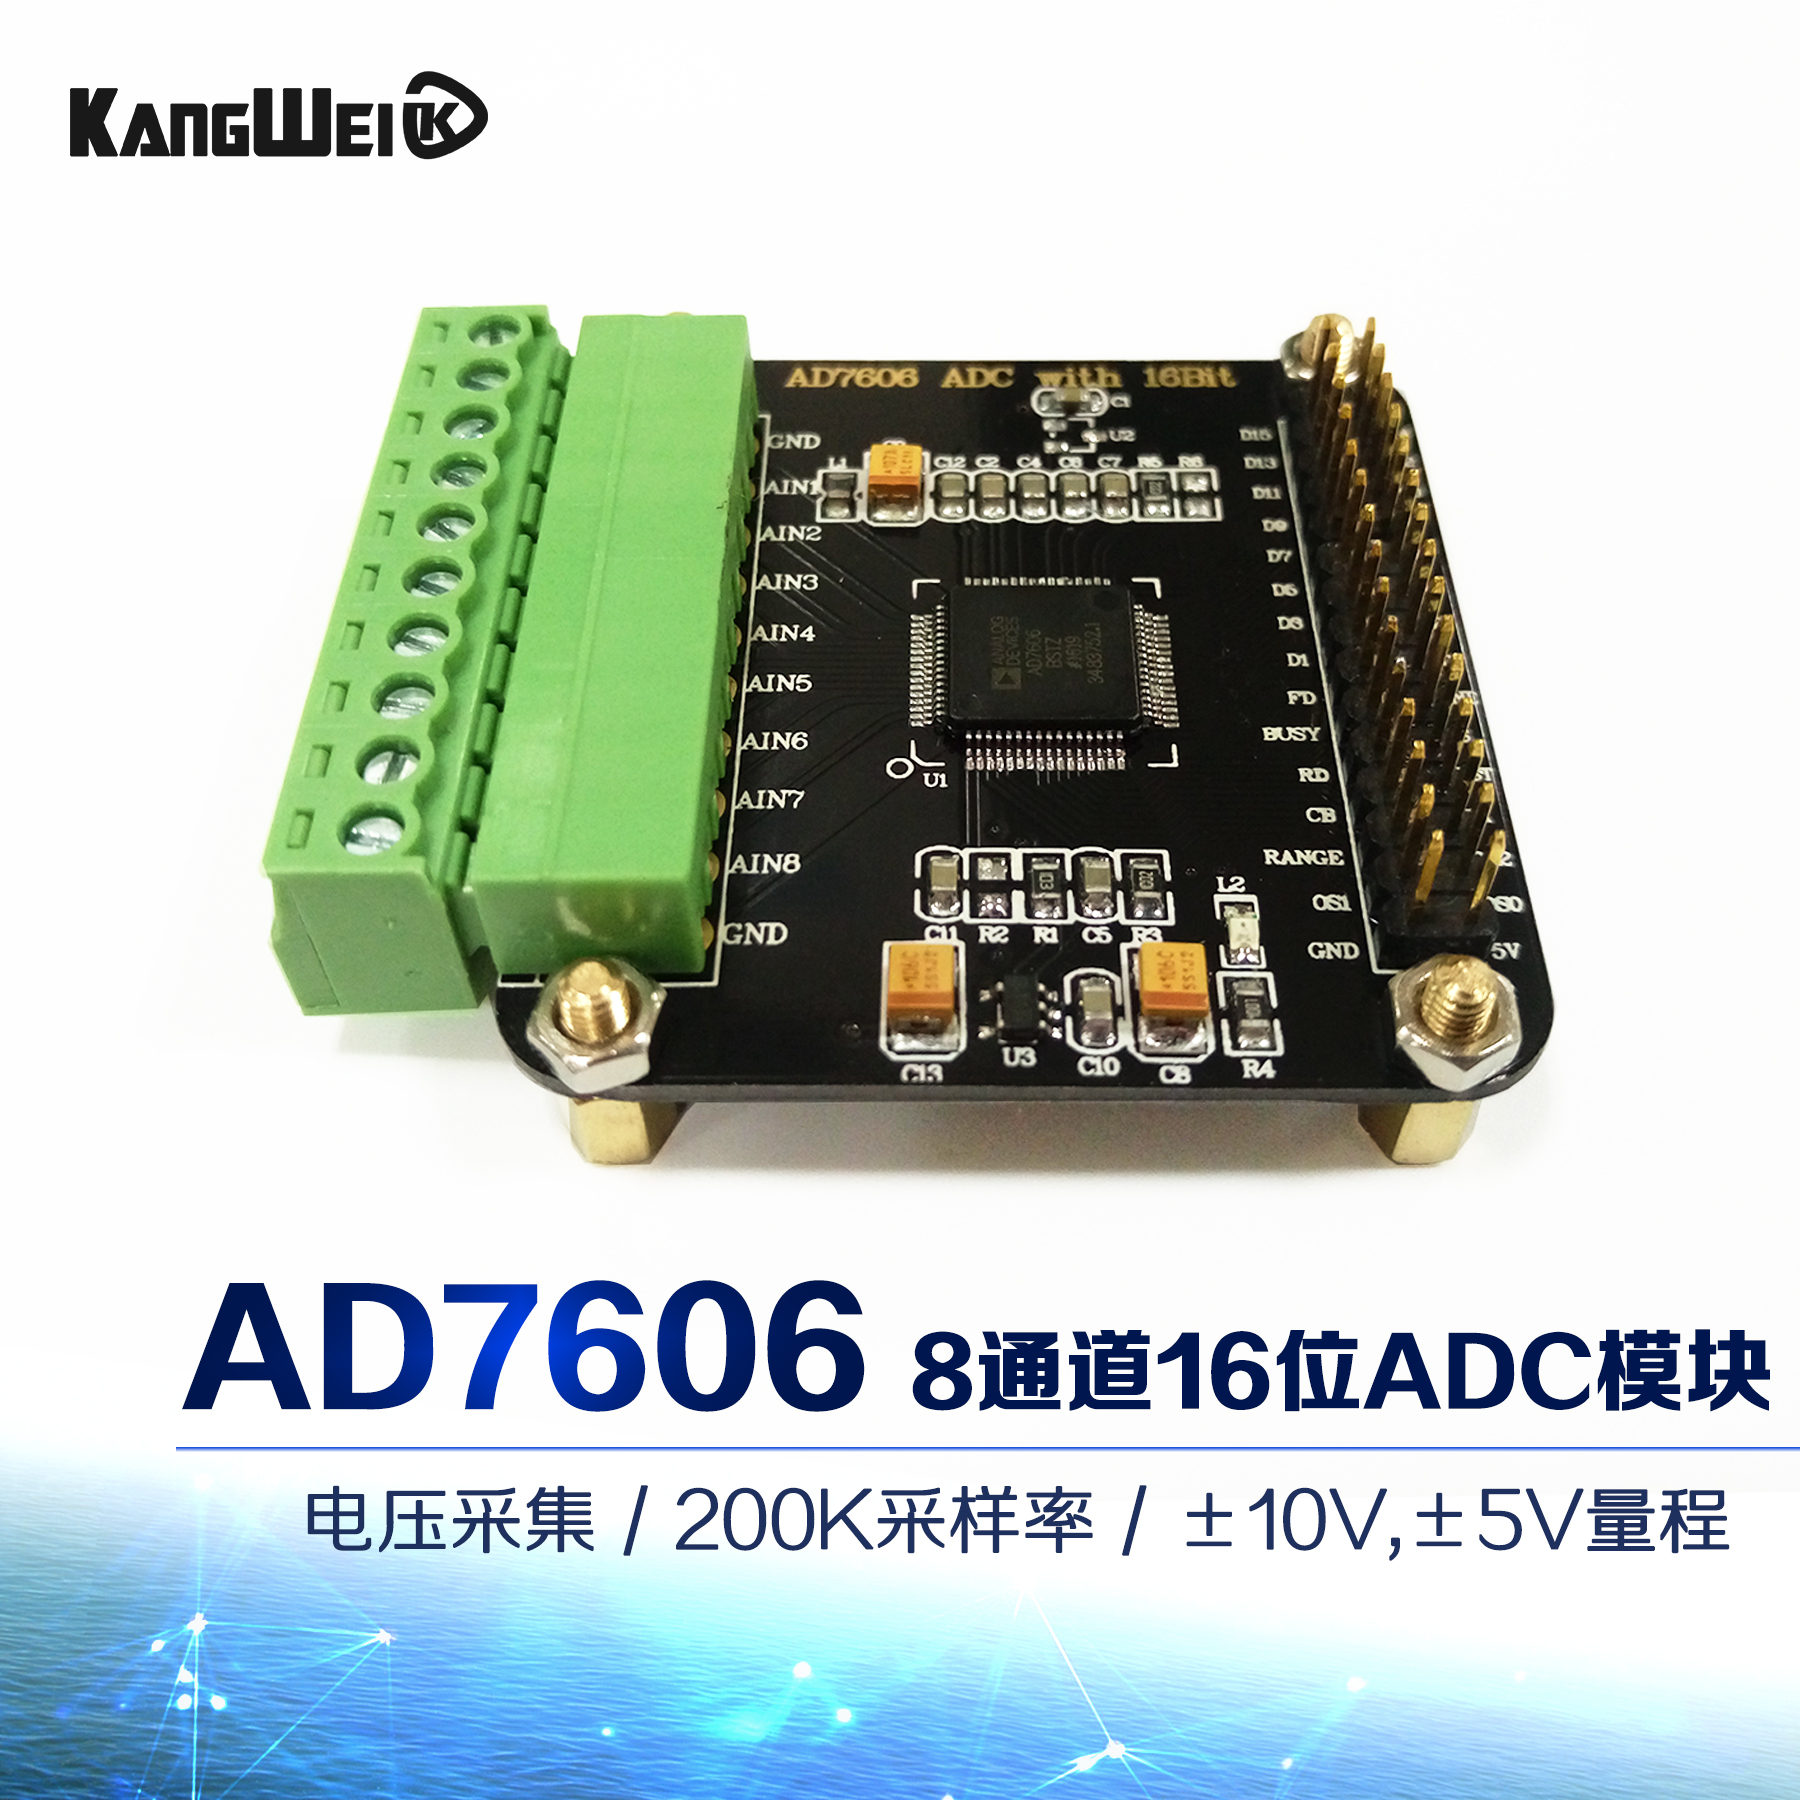 AD7606 multi-channel AD data acquisition module, 16 bit ADC, 8 way synchronous sampling frequency, 200KHz